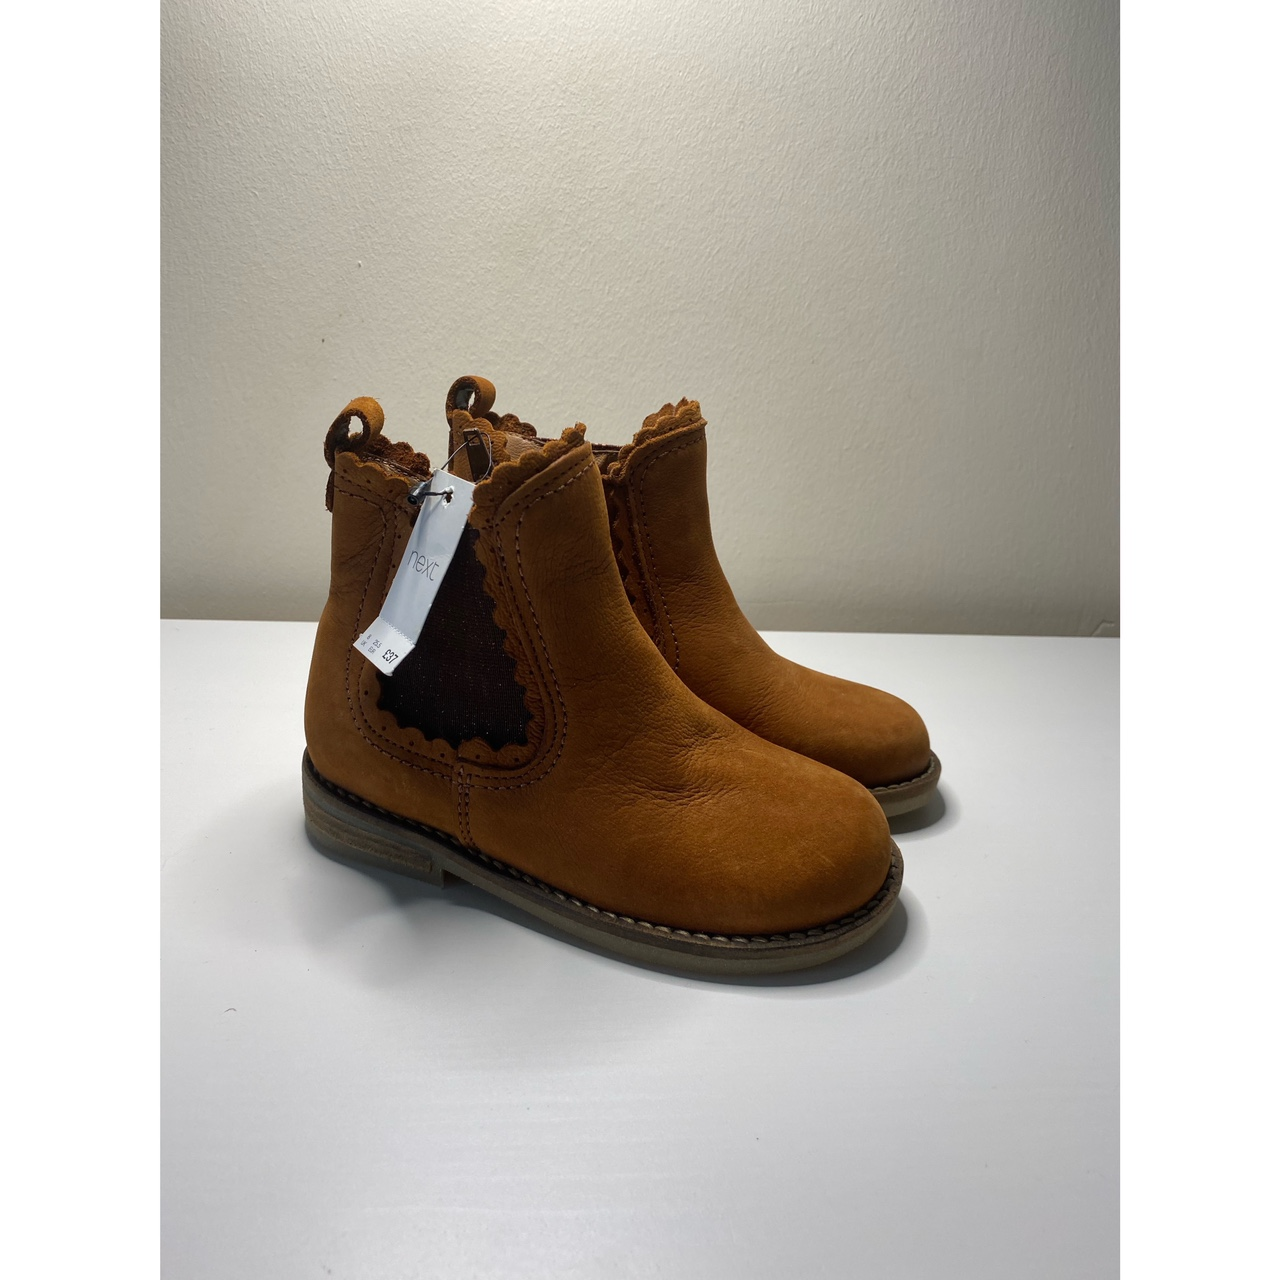 Young girls Boots Brown suede Chelsea